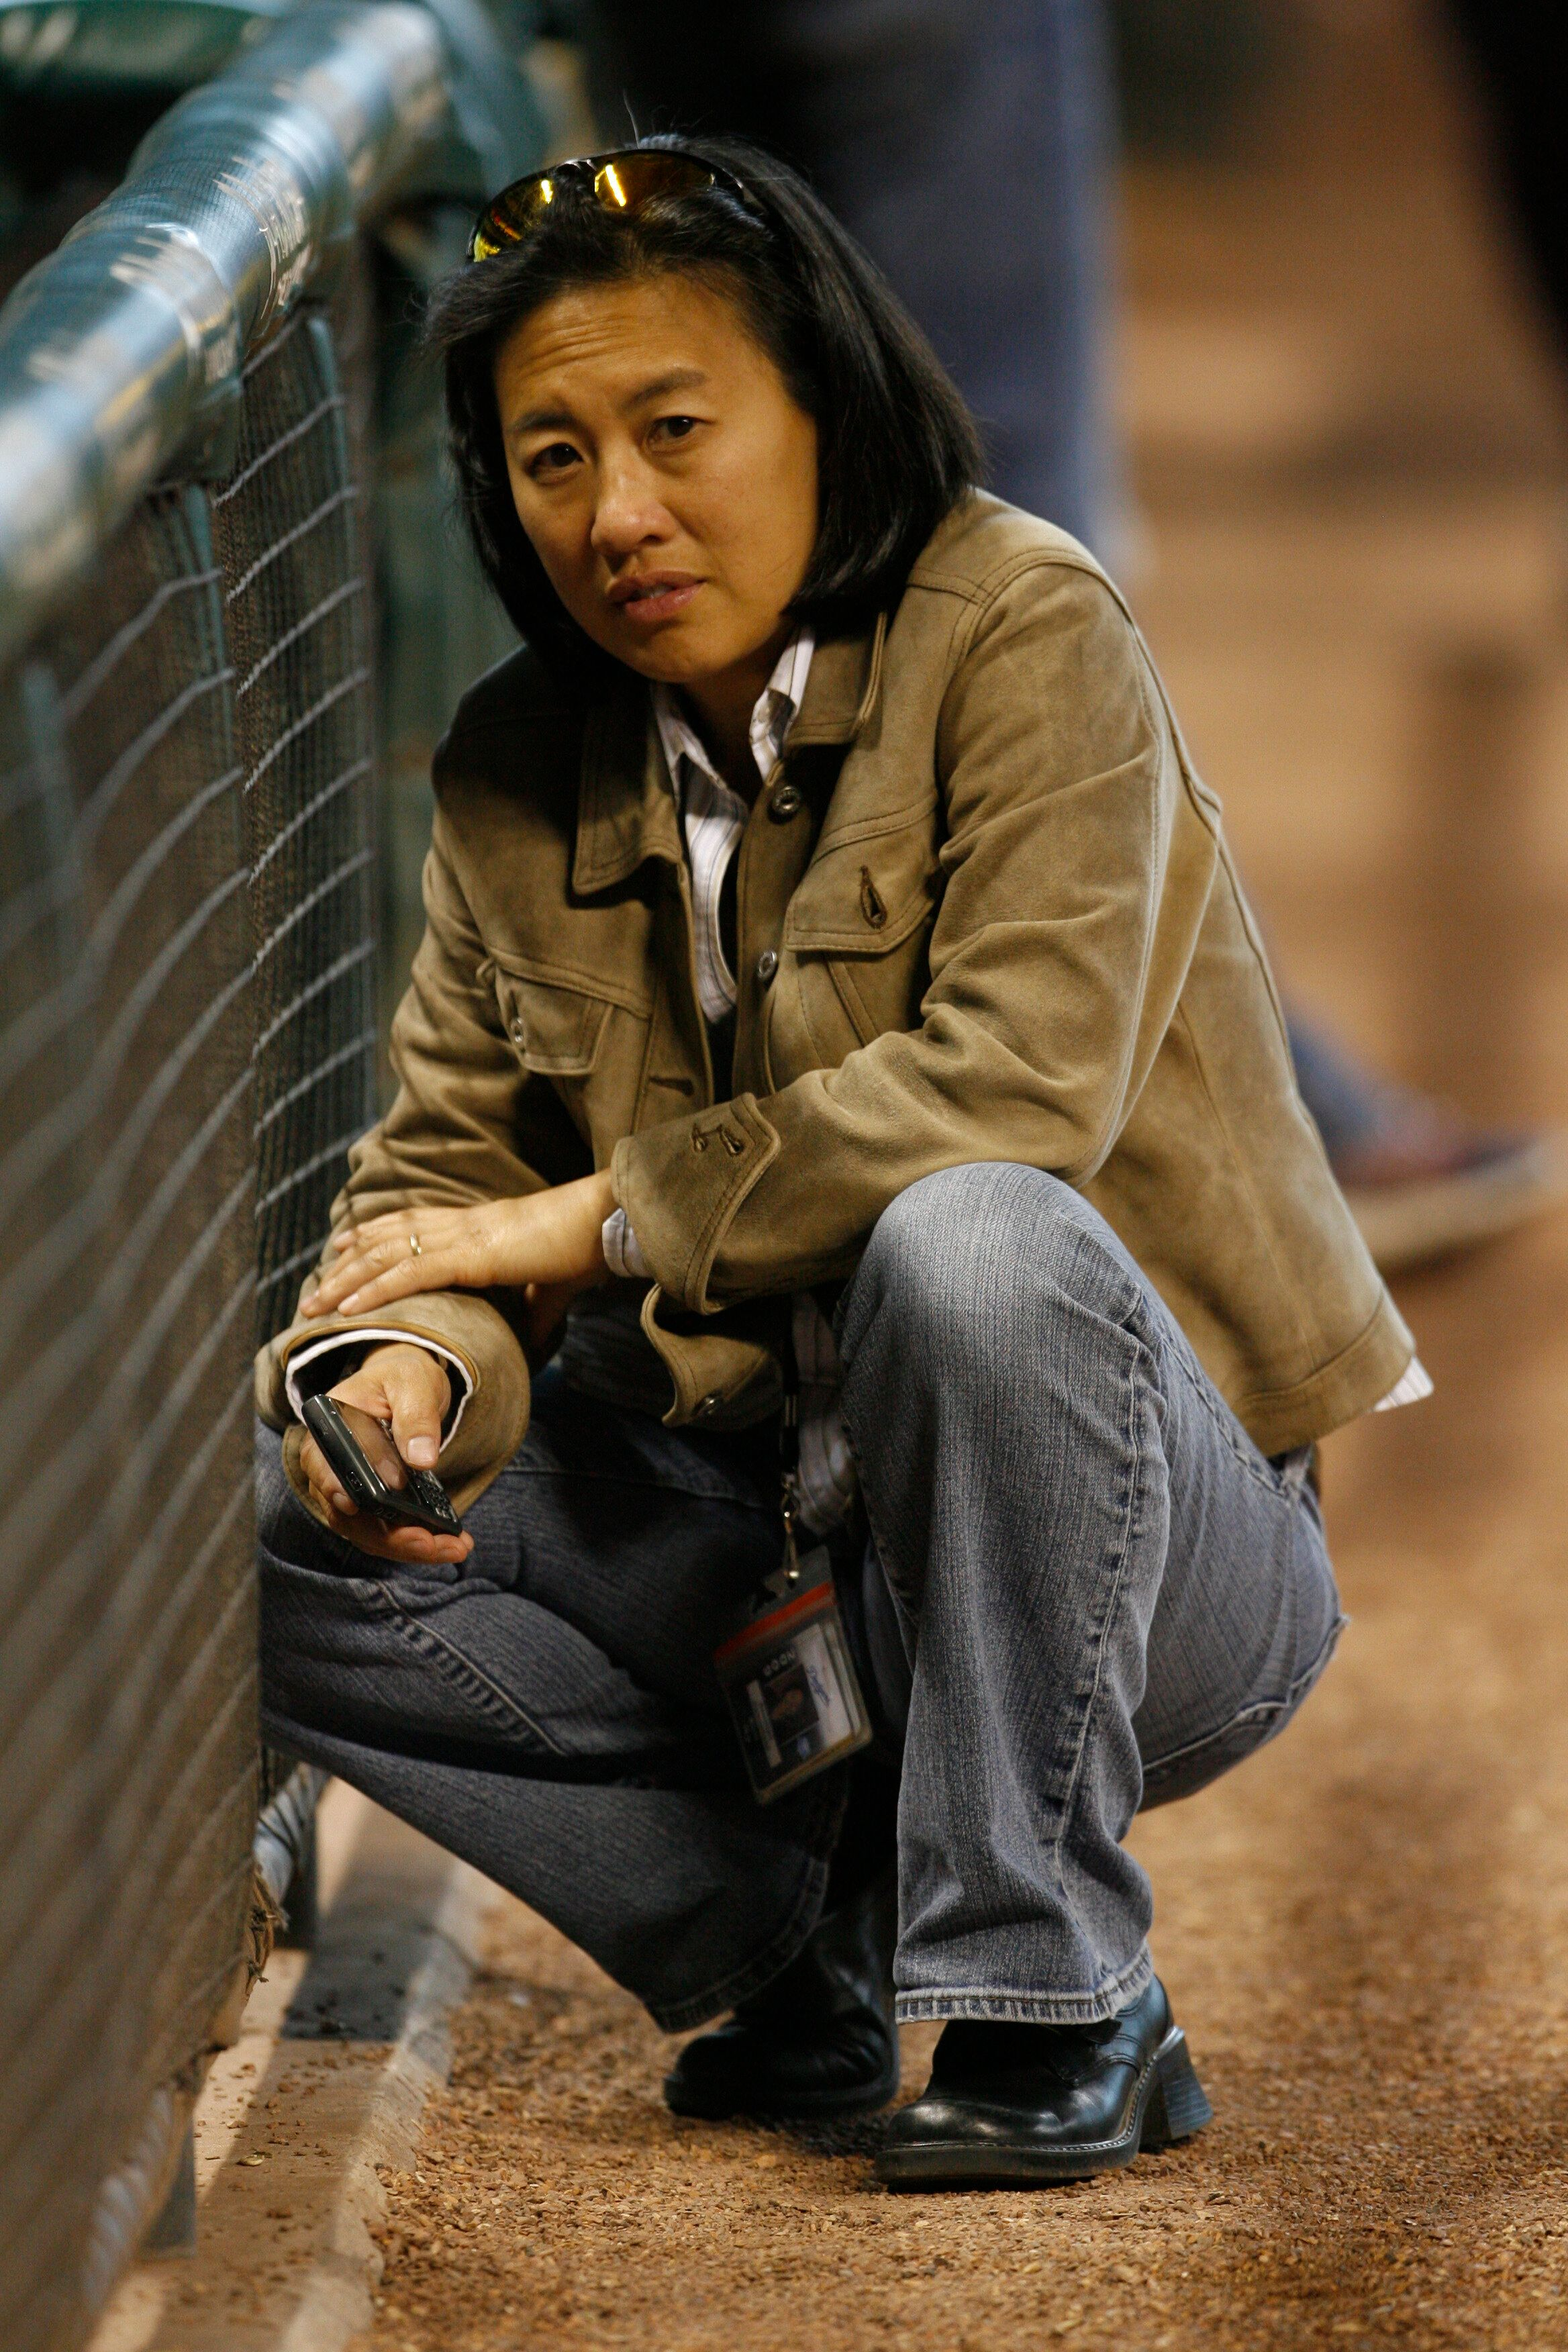 Kim Ng, then the Los Angeles Dodgers vice president and assistant general manager, looks on prior to a 2009 game.